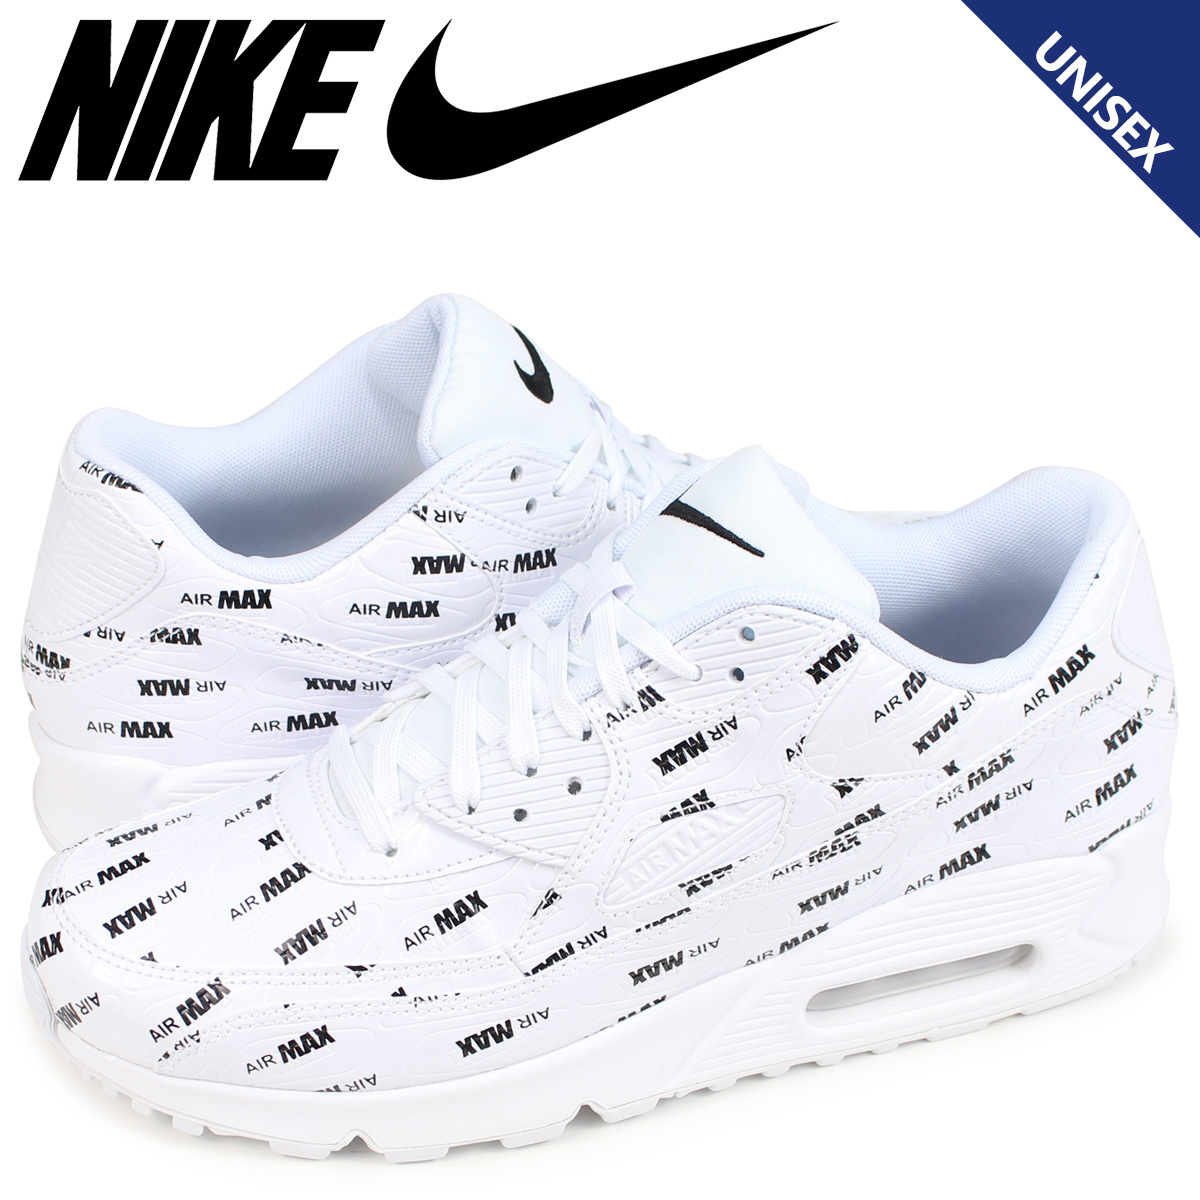 sale retailer 6d5a6 28bf7 Nike NIKE Air Max 90 sneakers men gap Dis AIR MAX 90 PREMIUM 700,155-103  white  load planned Shinnyu load in reservation product 8 18 containing